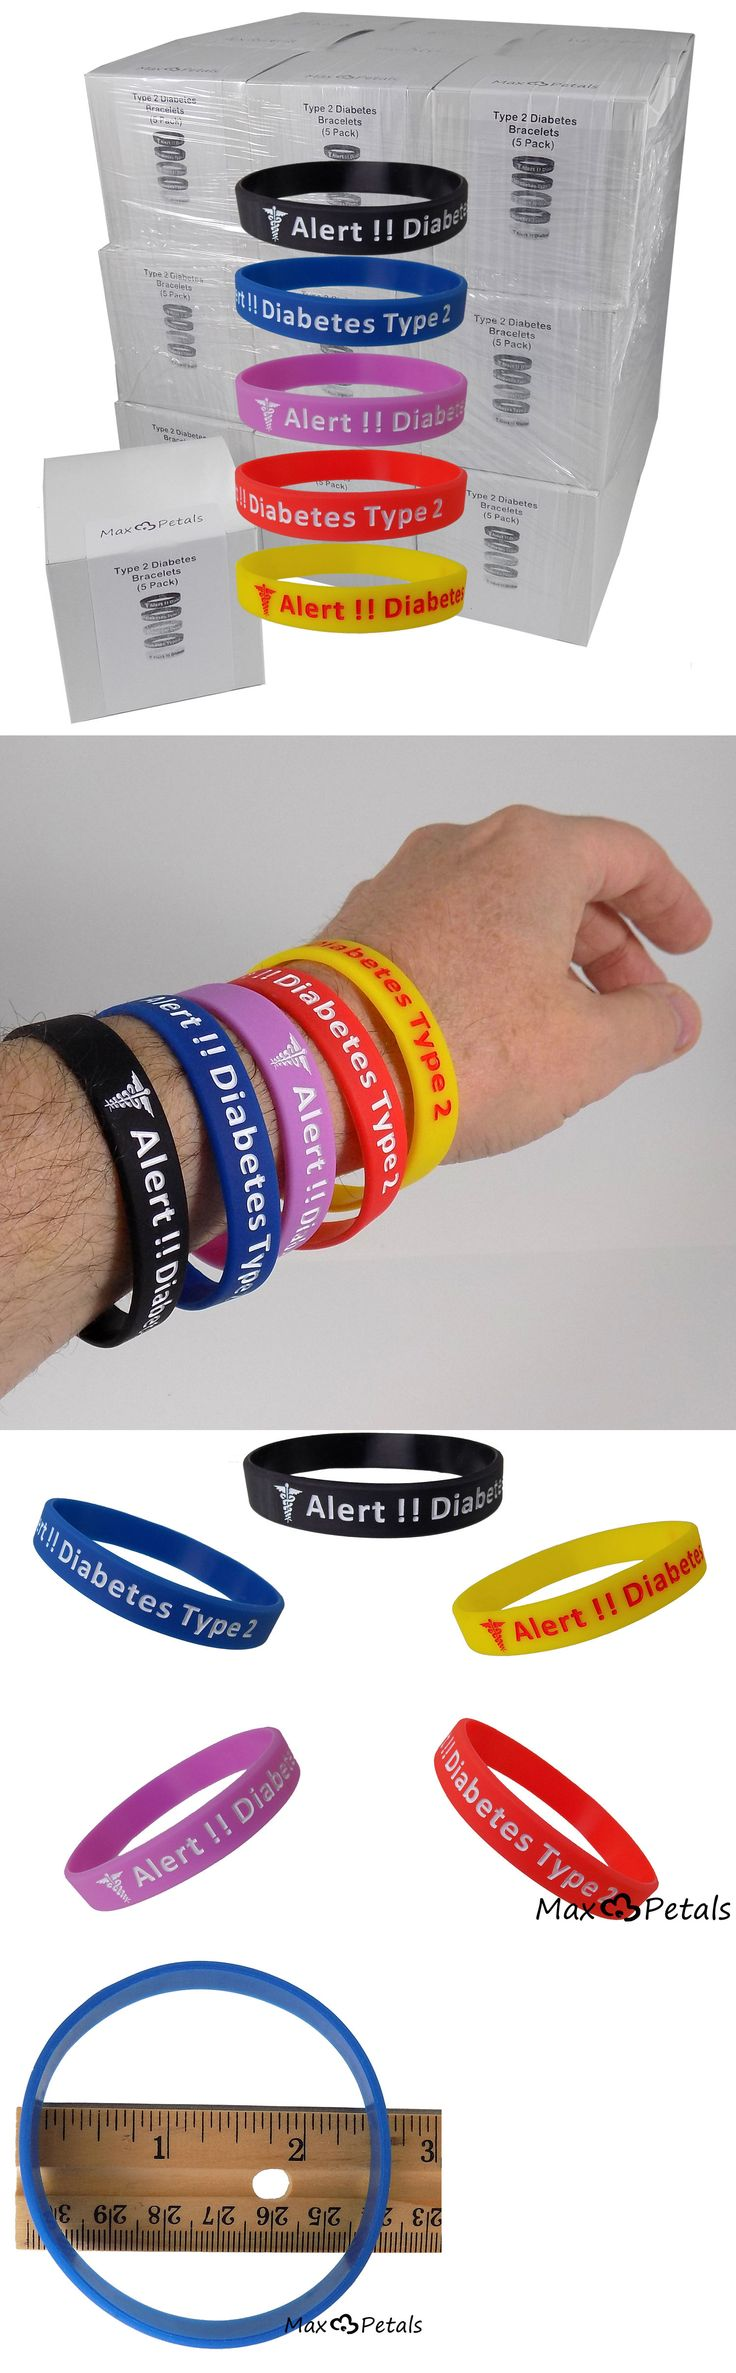 Wristbands 112603: Diabetes Type 2 Silicone Bracelet Wristbands Lot 27 5 Packs -> BUY IT NOW ONLY: $189.95 on eBay!